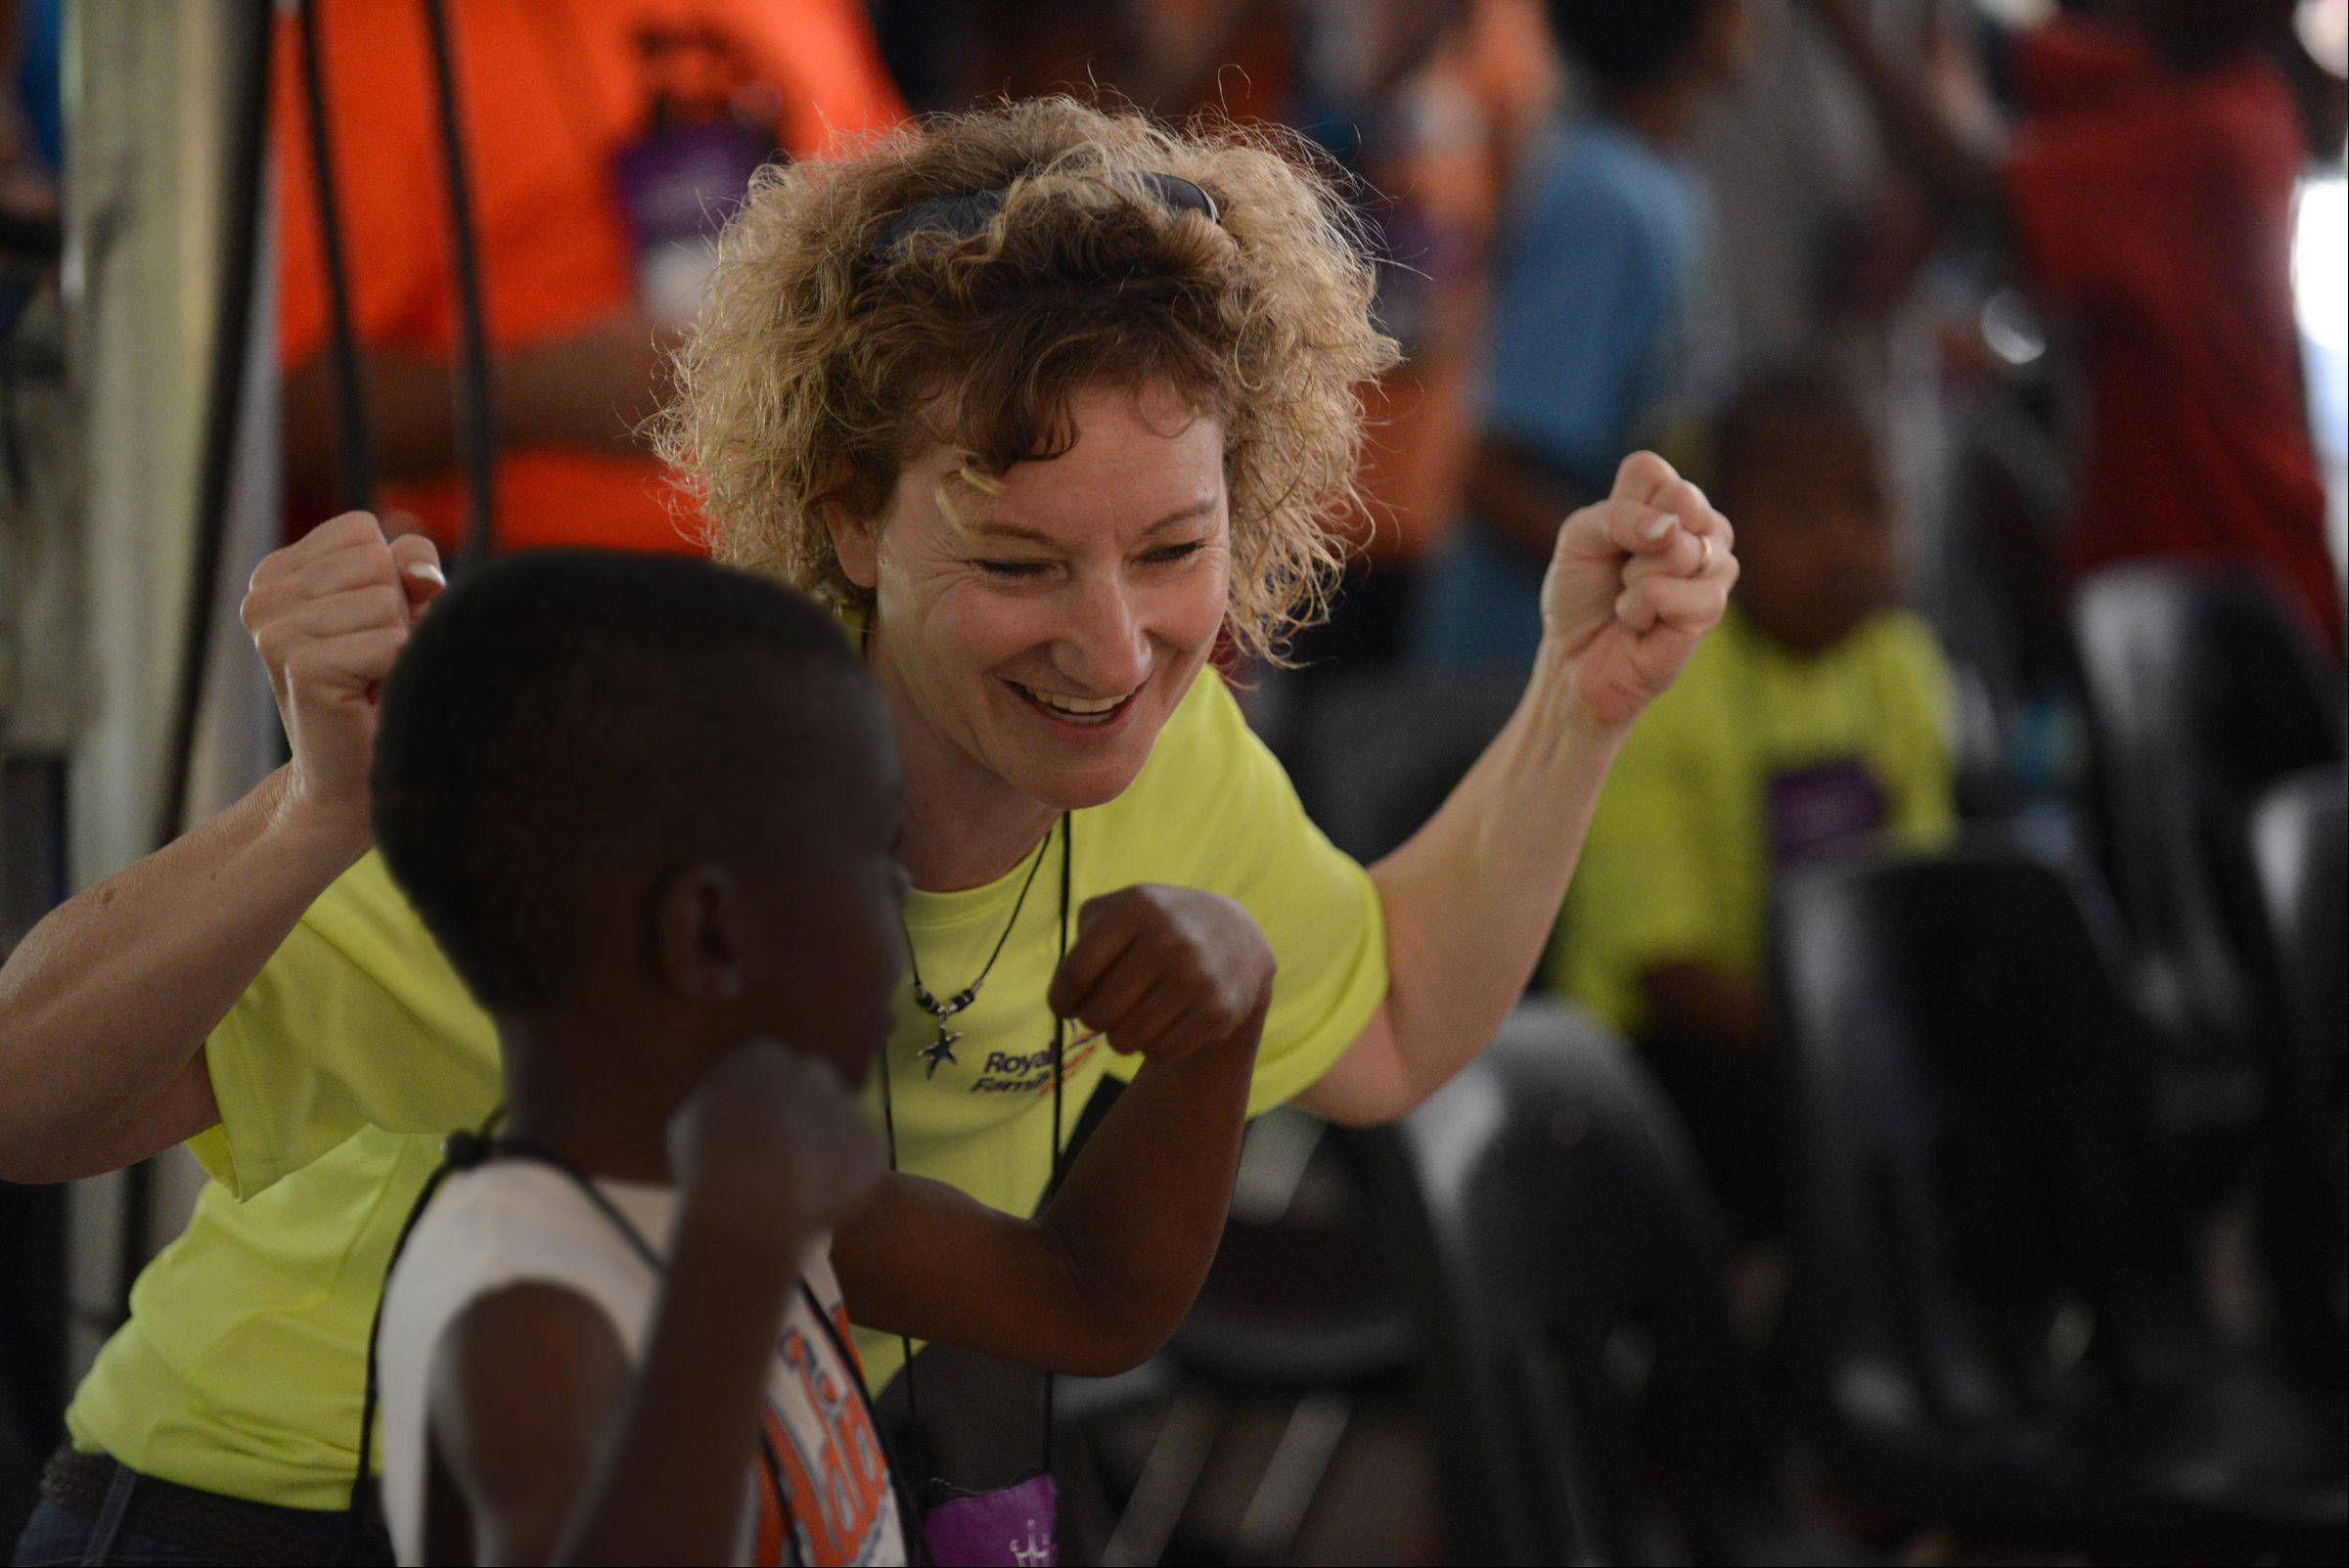 Royal Family Kids Camp director Carol Weber of St. Charles sings with one of the campers during breakfast club at the camp.